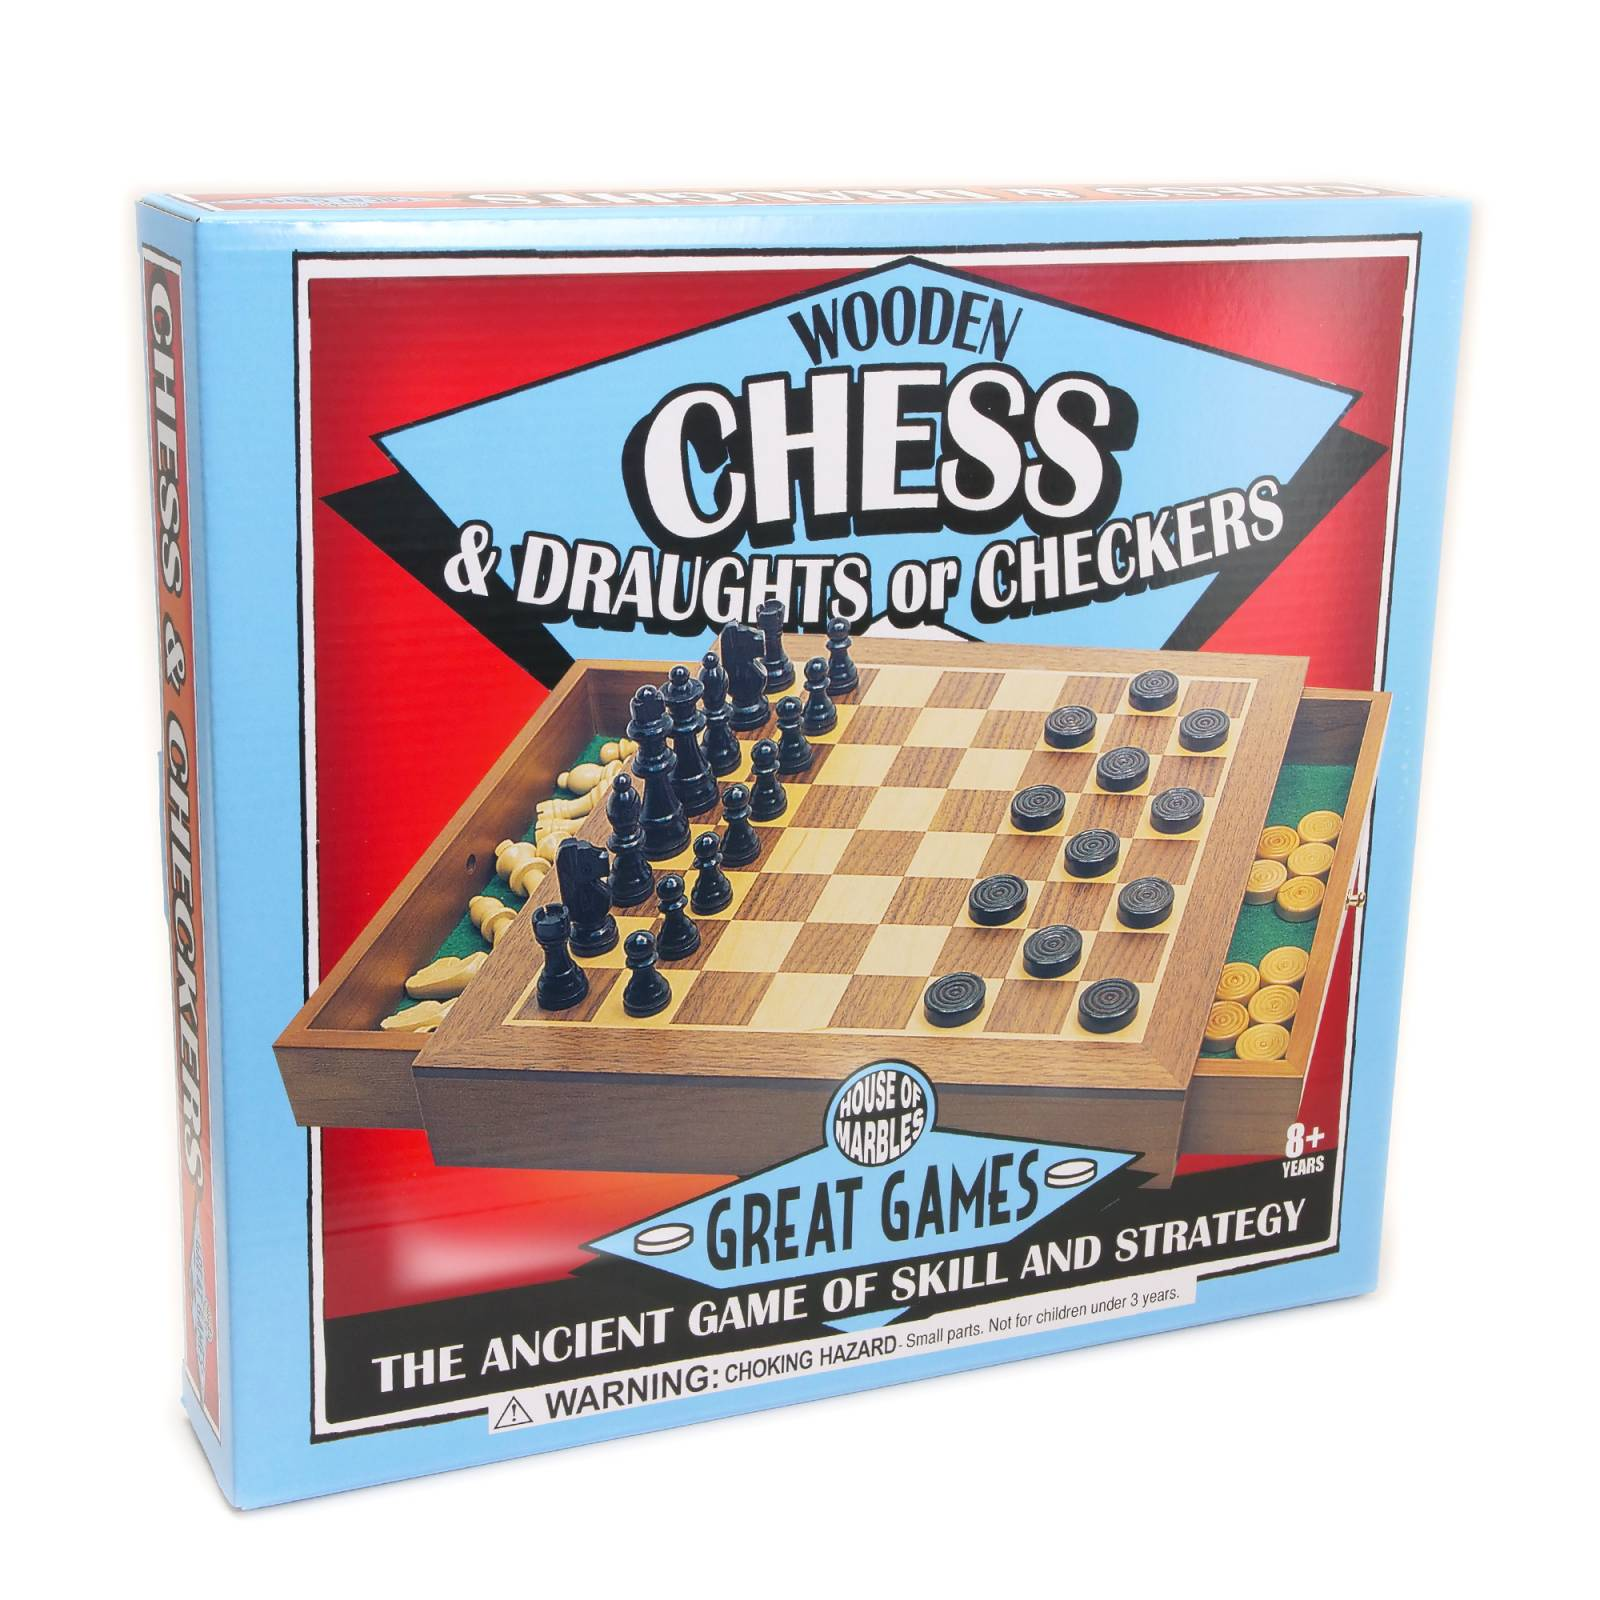 Deluxe Chess And Draughts In Box With Drawer thumbnails